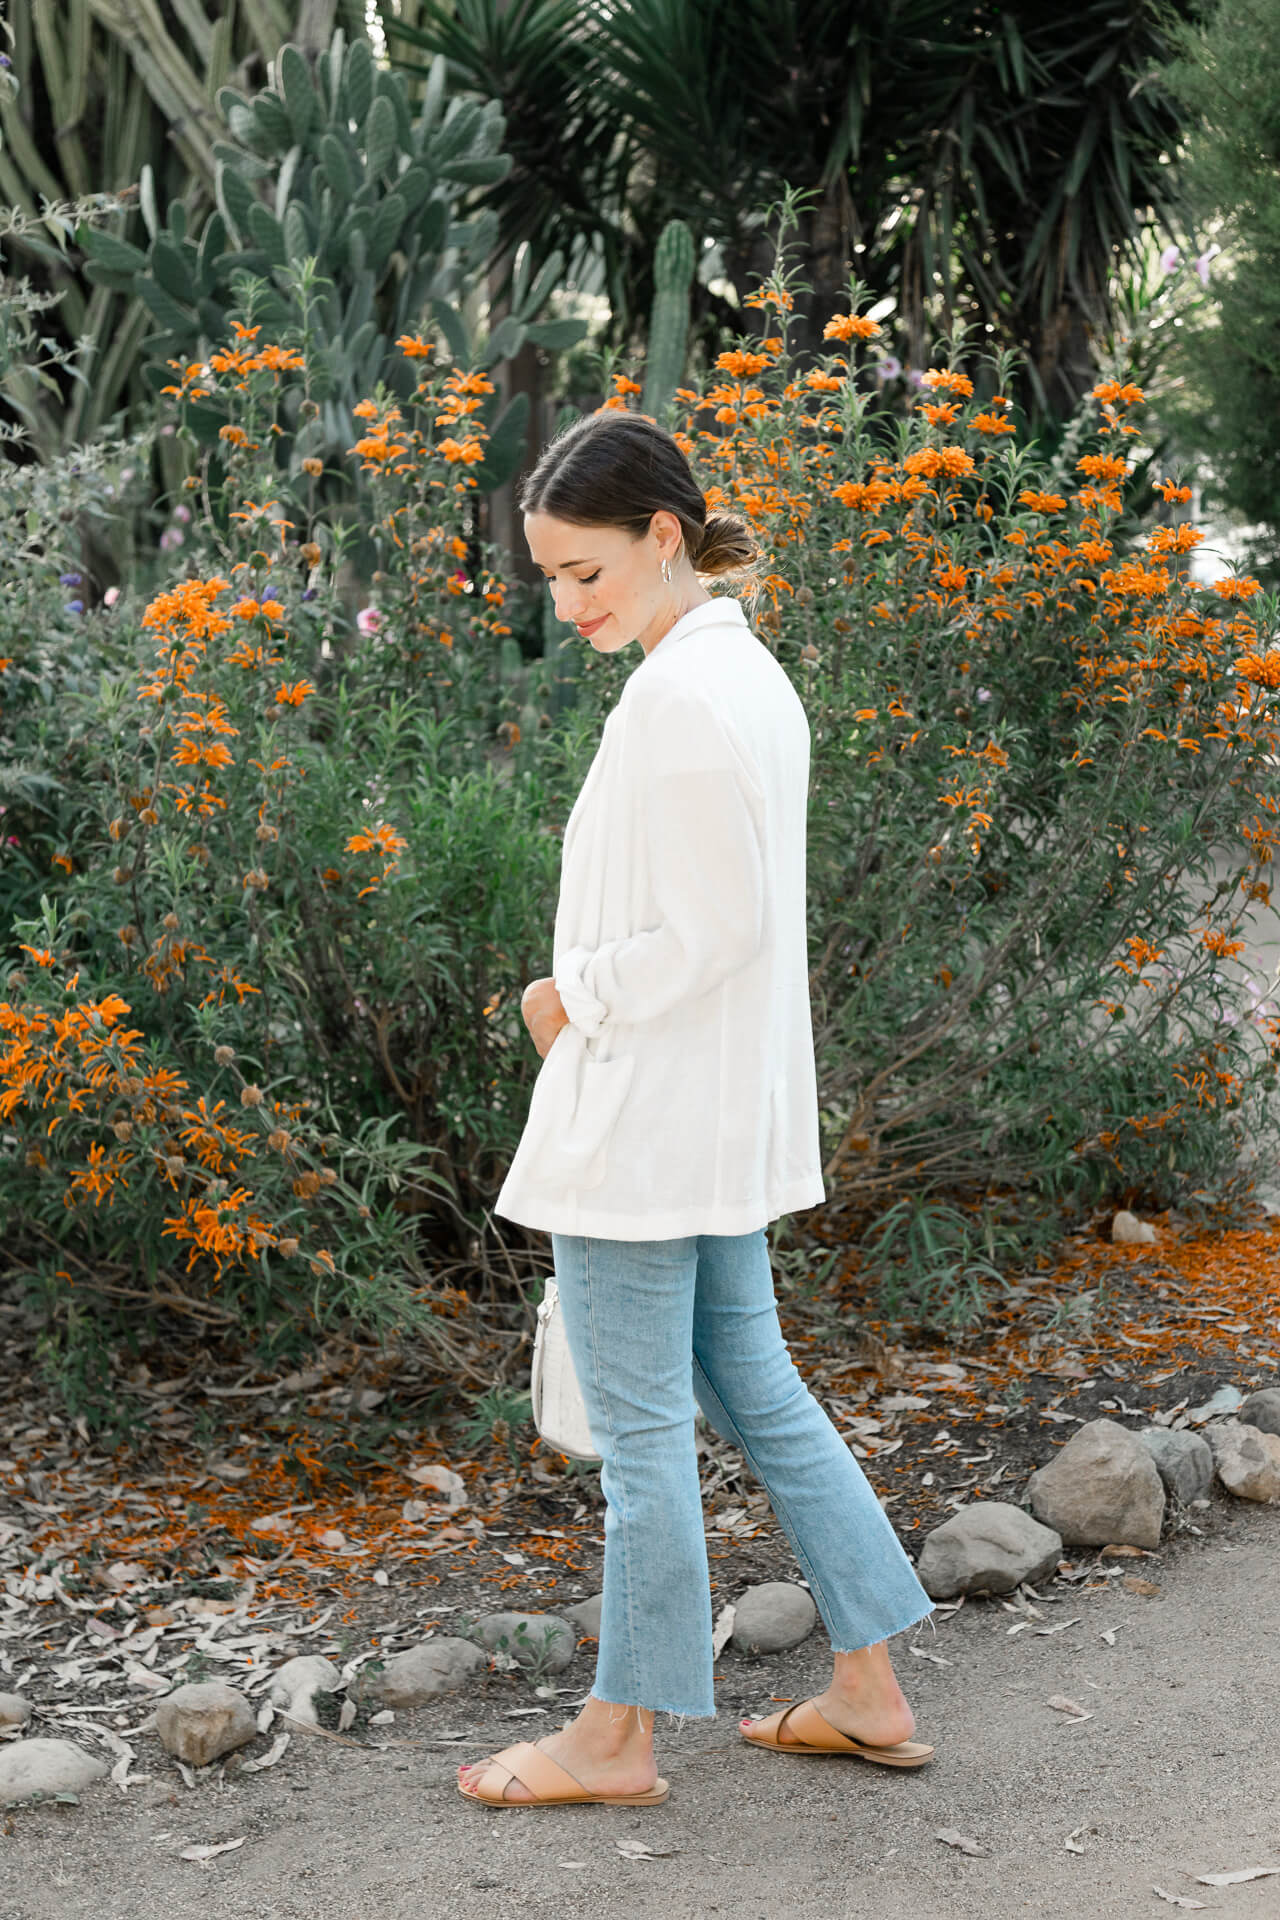 Here's a perfect summertime outfit! - M Loves M @marmar